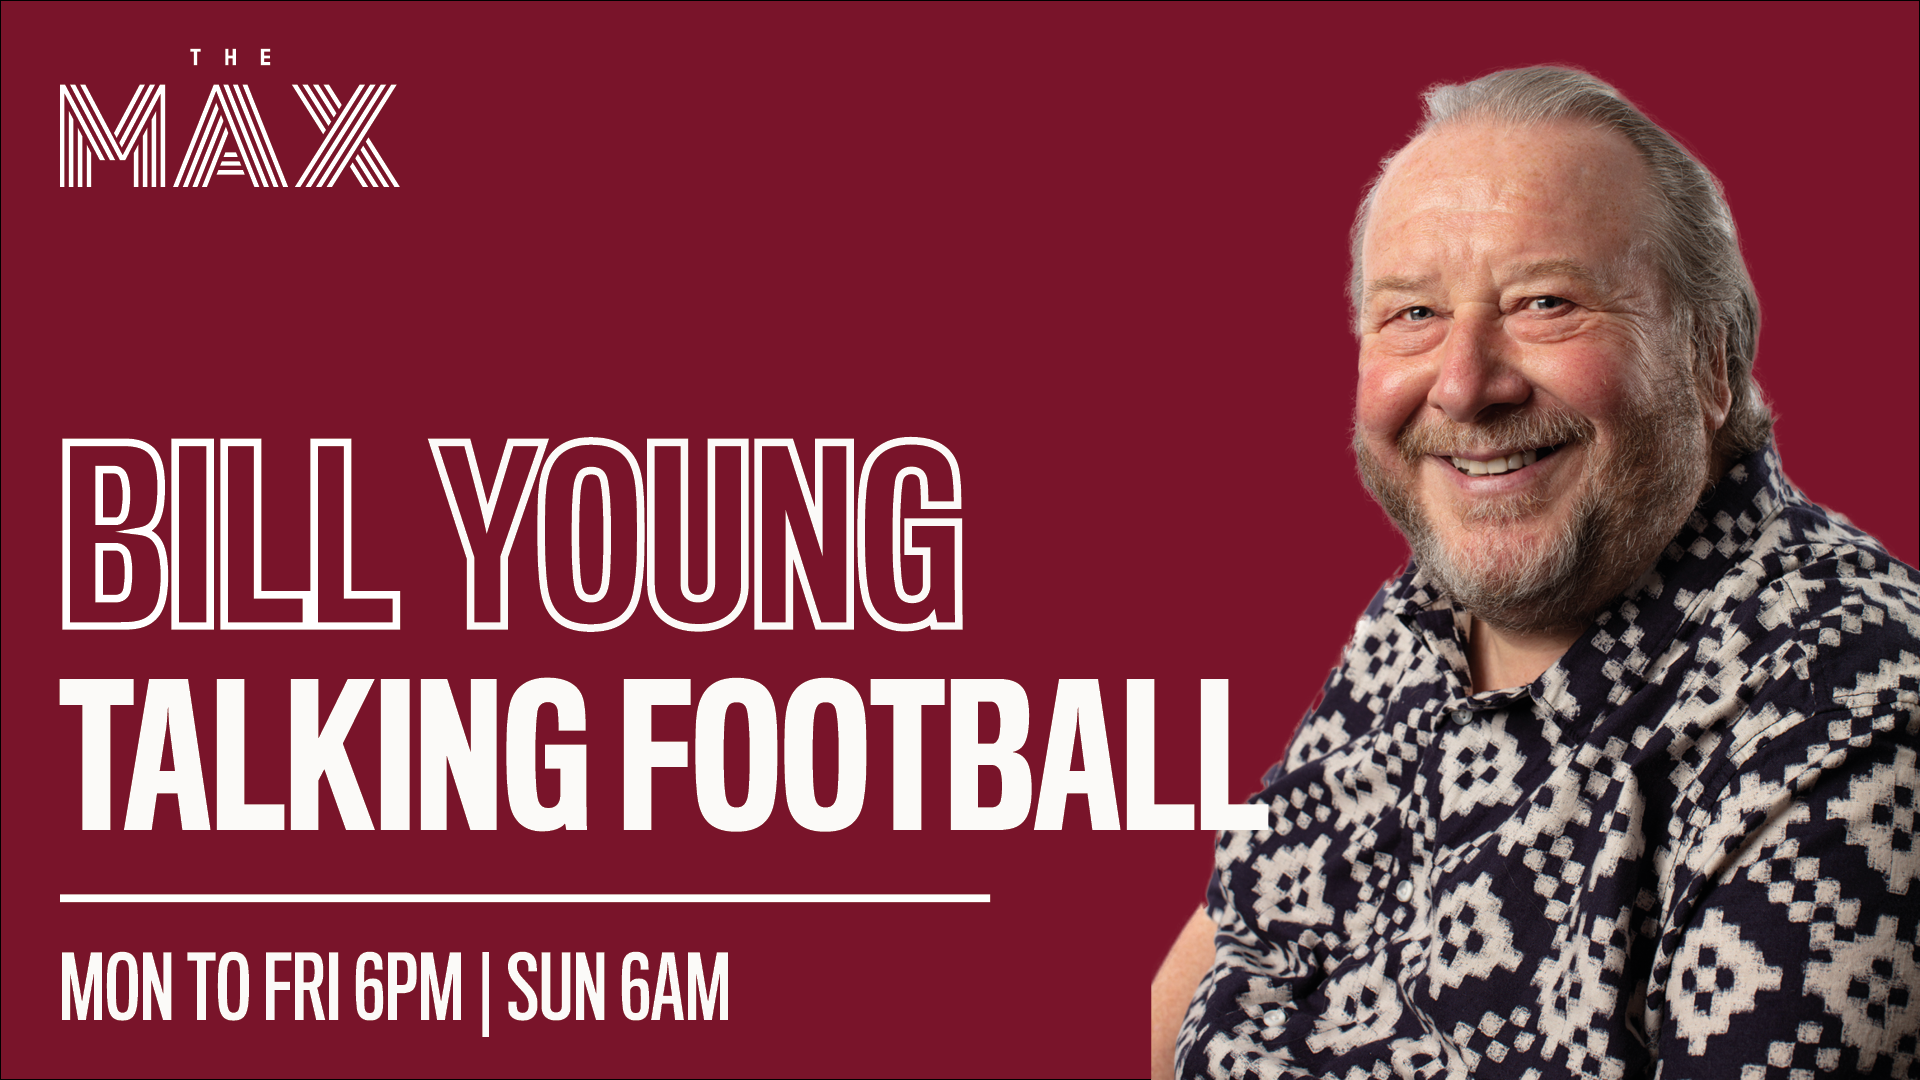 Talking Football with Bill Young - Friday 5th February